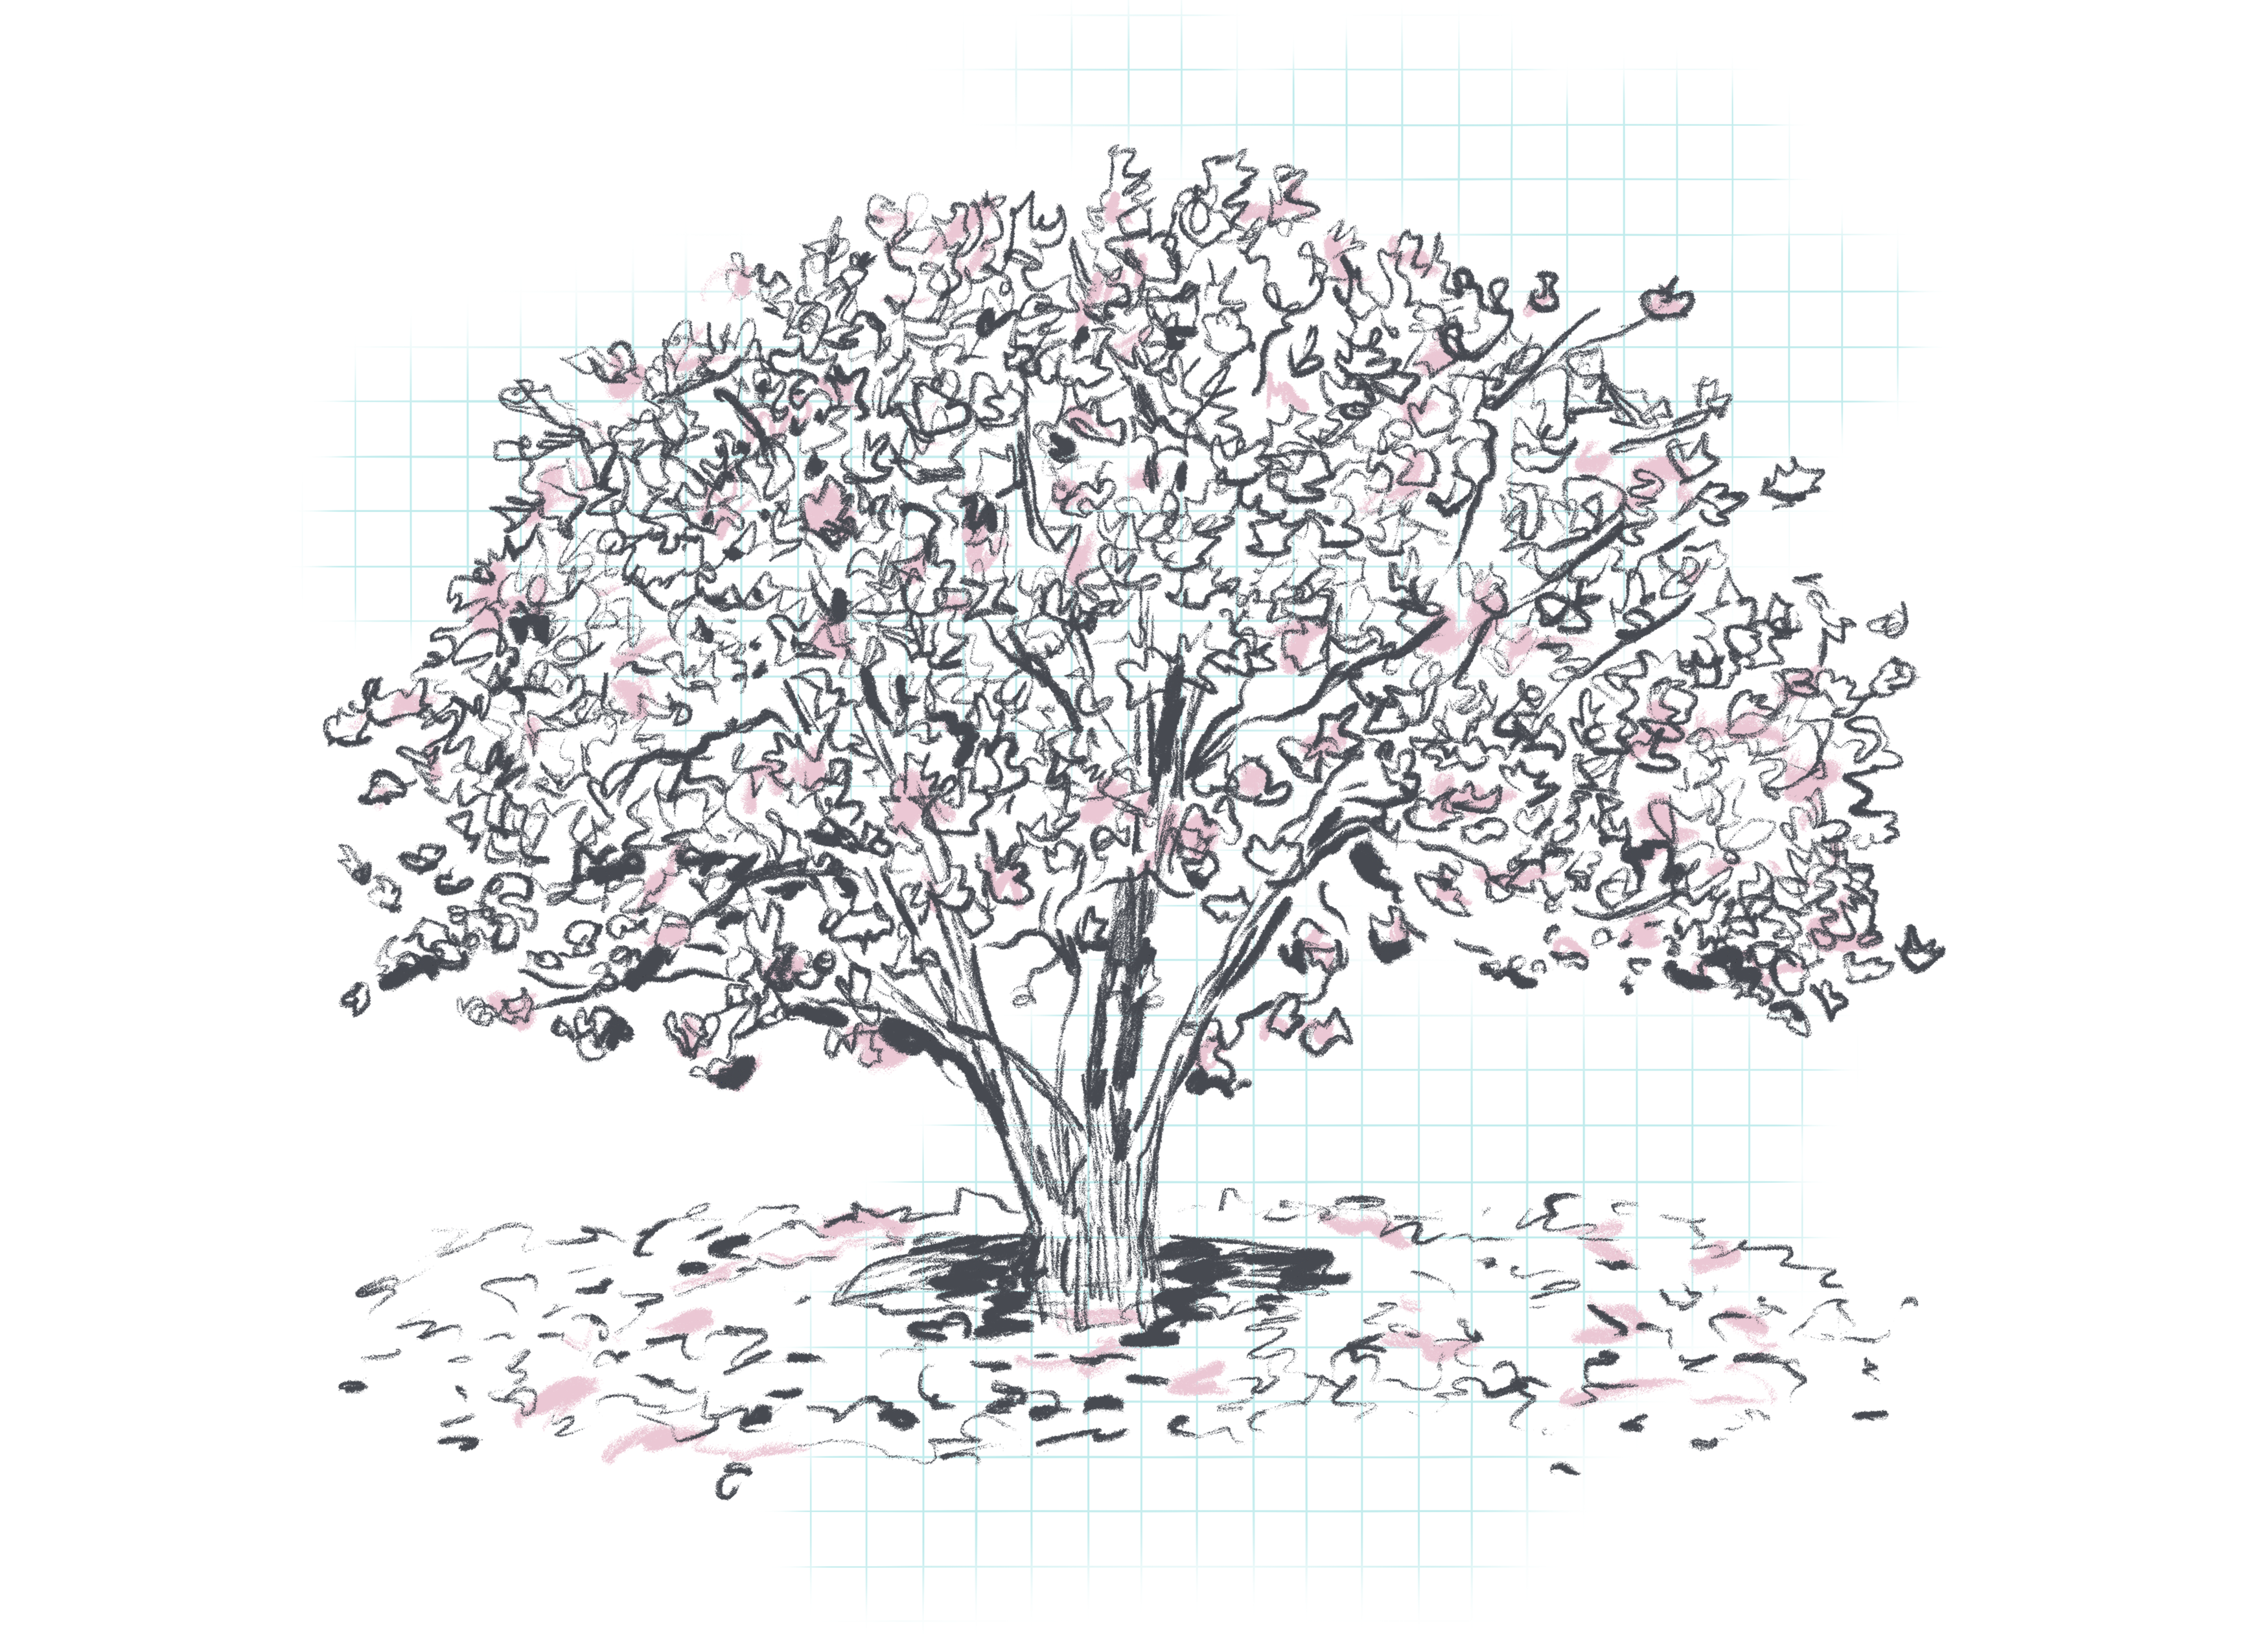 a sketchy illustration of a magnolia tree in bloom with pink petals scattered on the ground